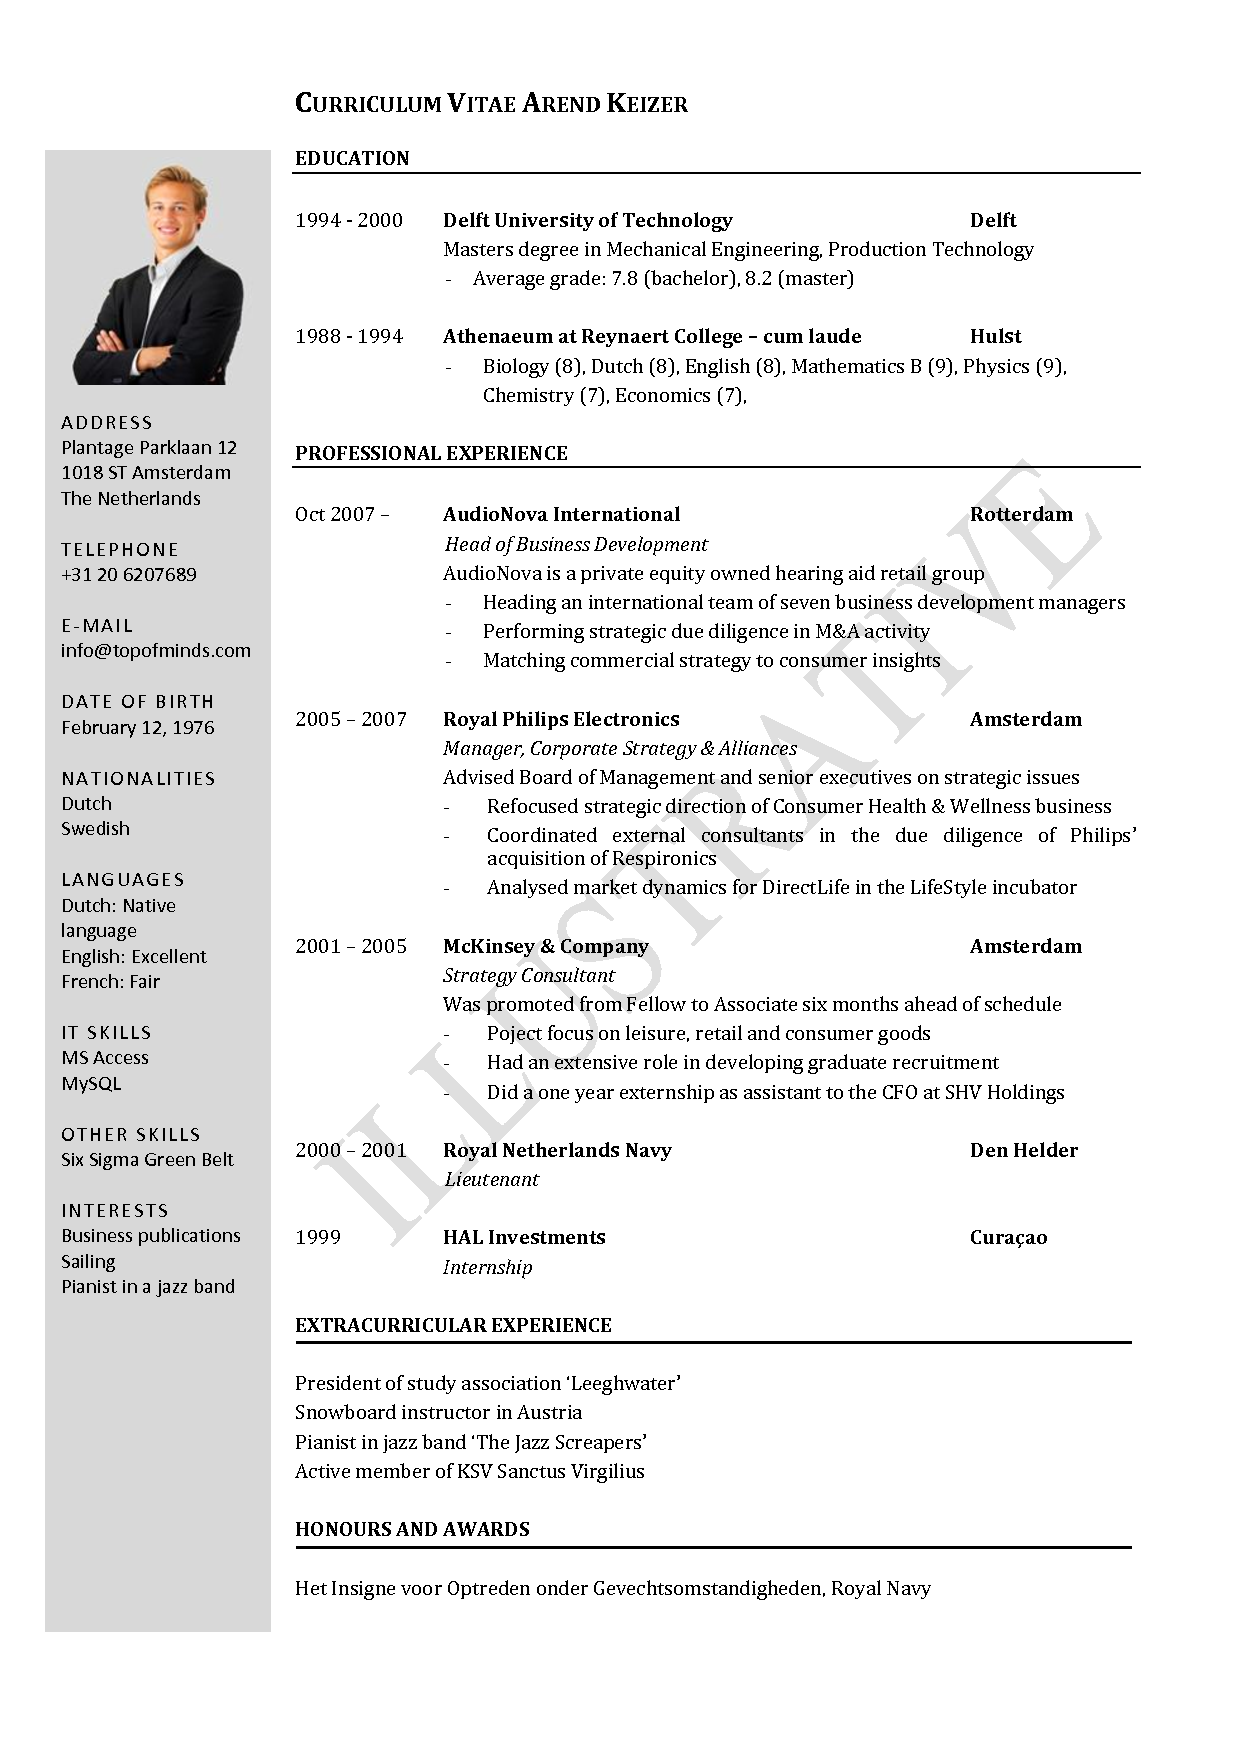 Google Templates Resume Cv Template University Student  Google Search  Cv Template